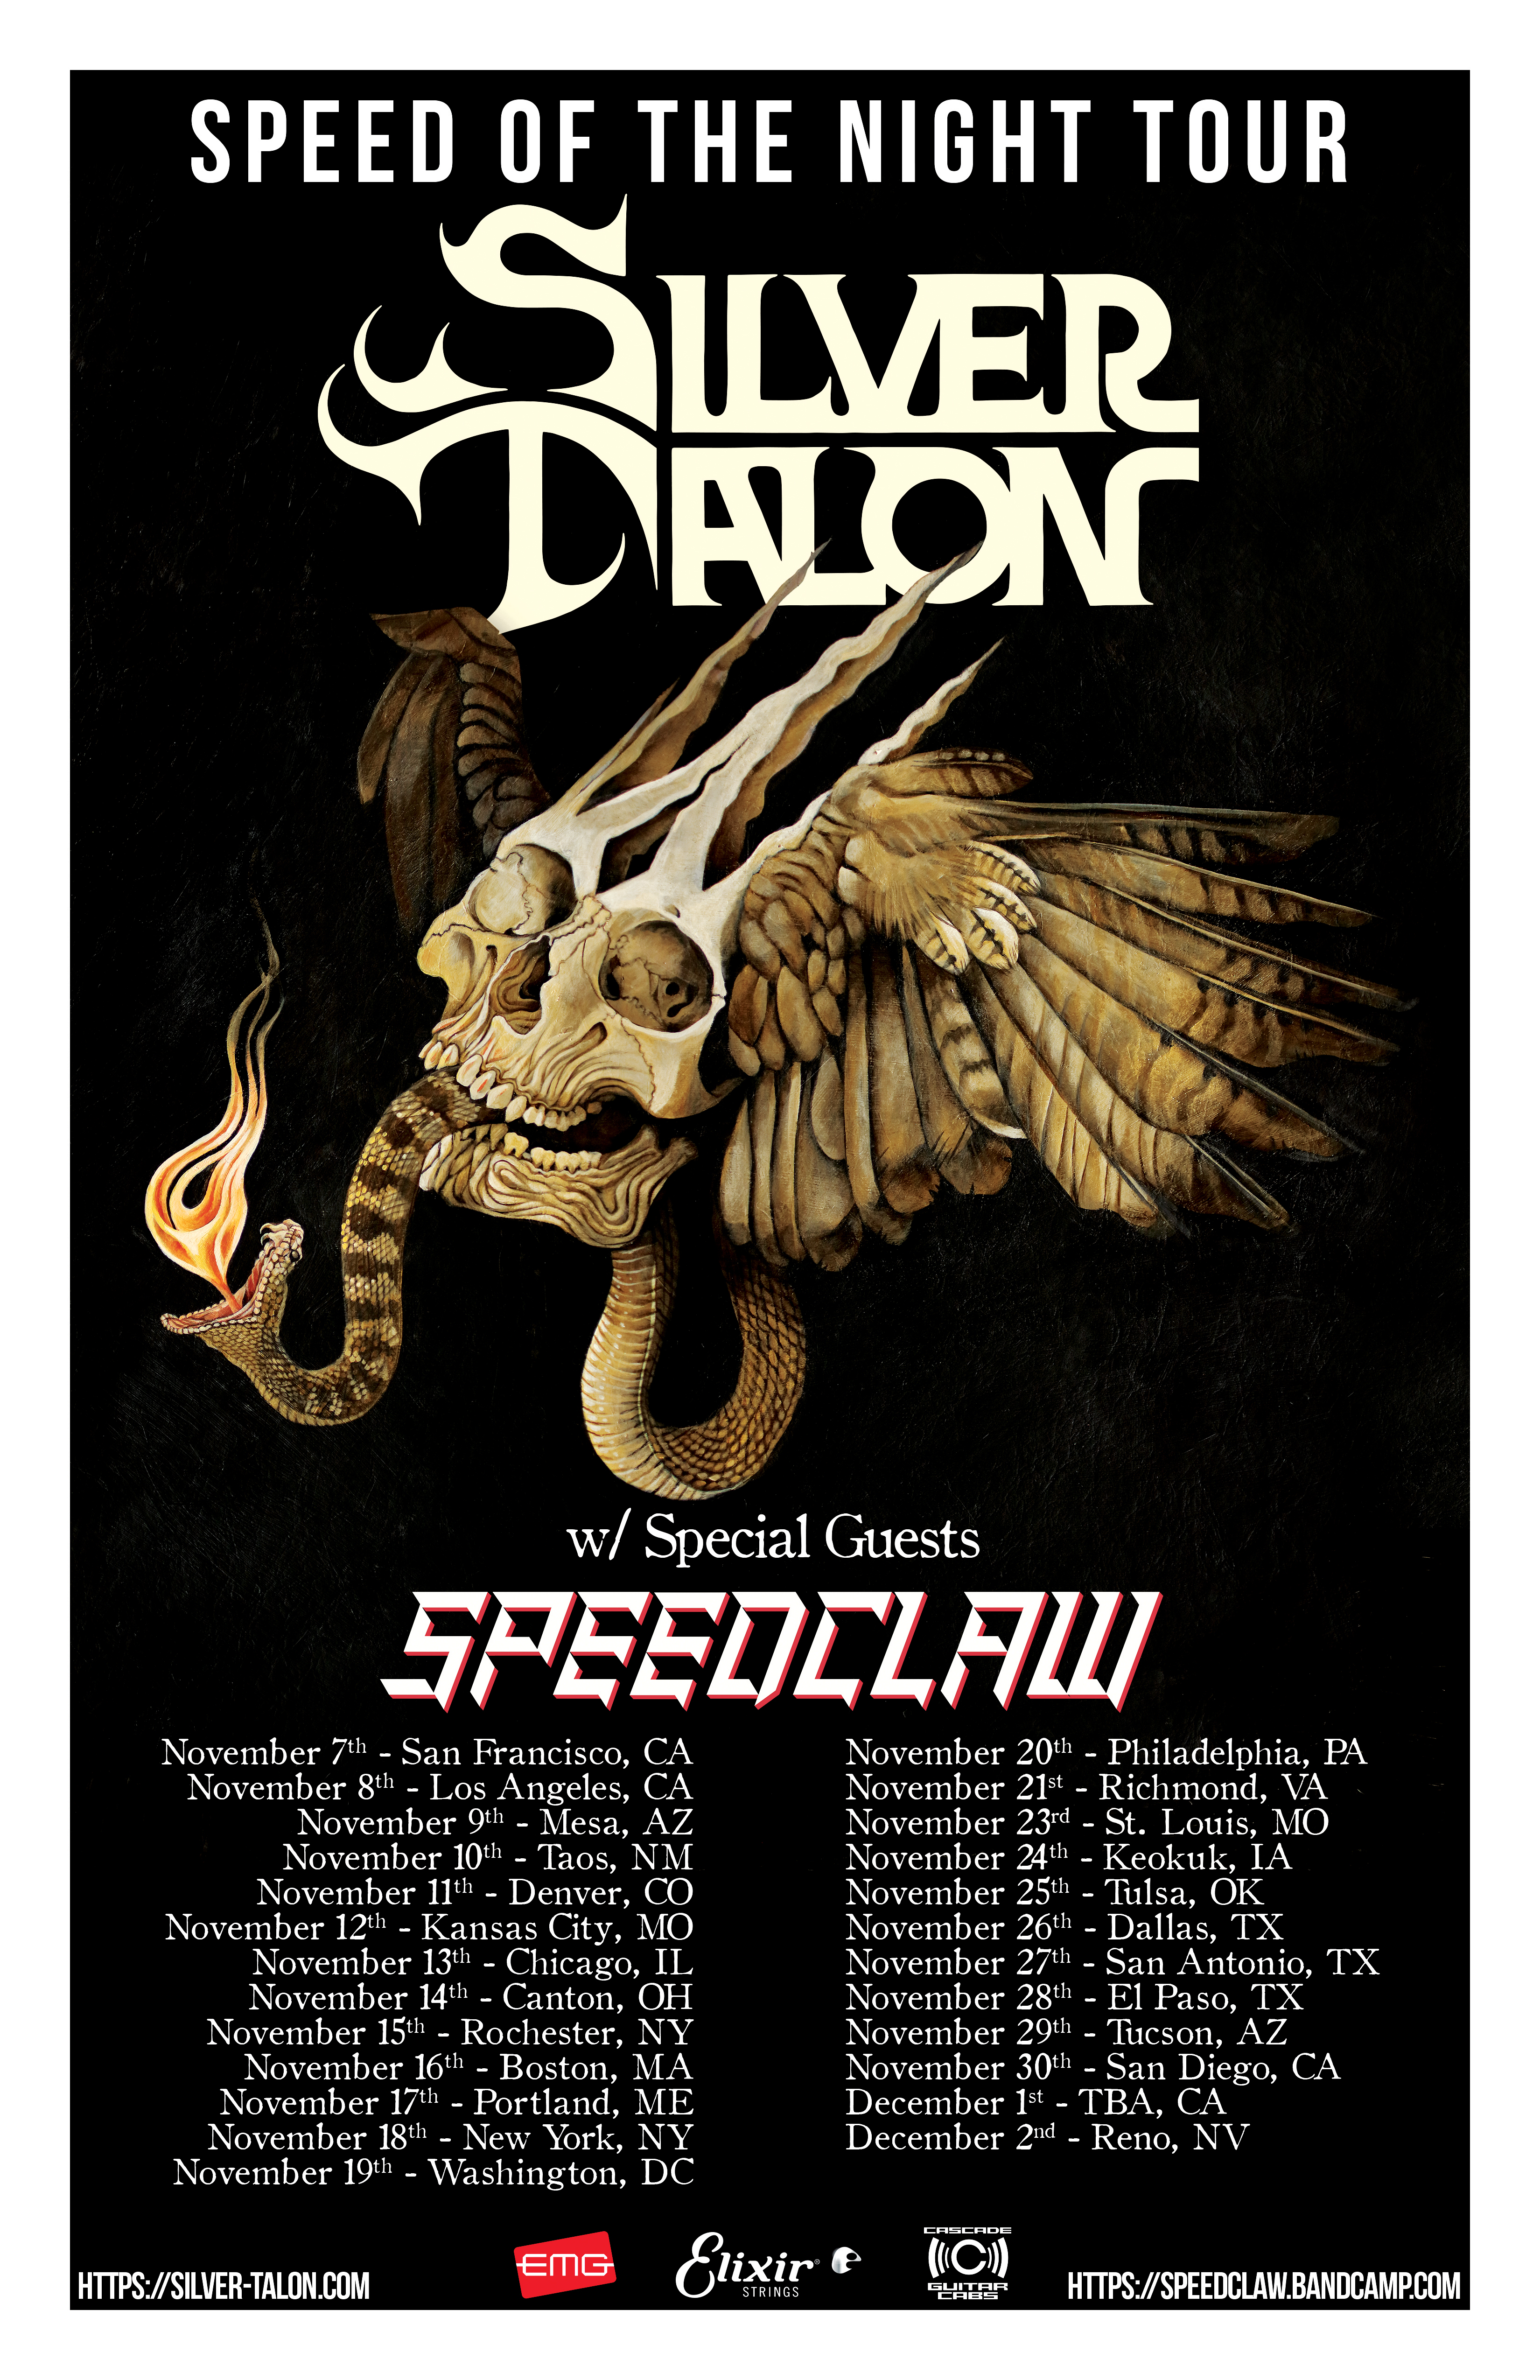 Silver Talon Speed of the Night Tour with Speedclaw